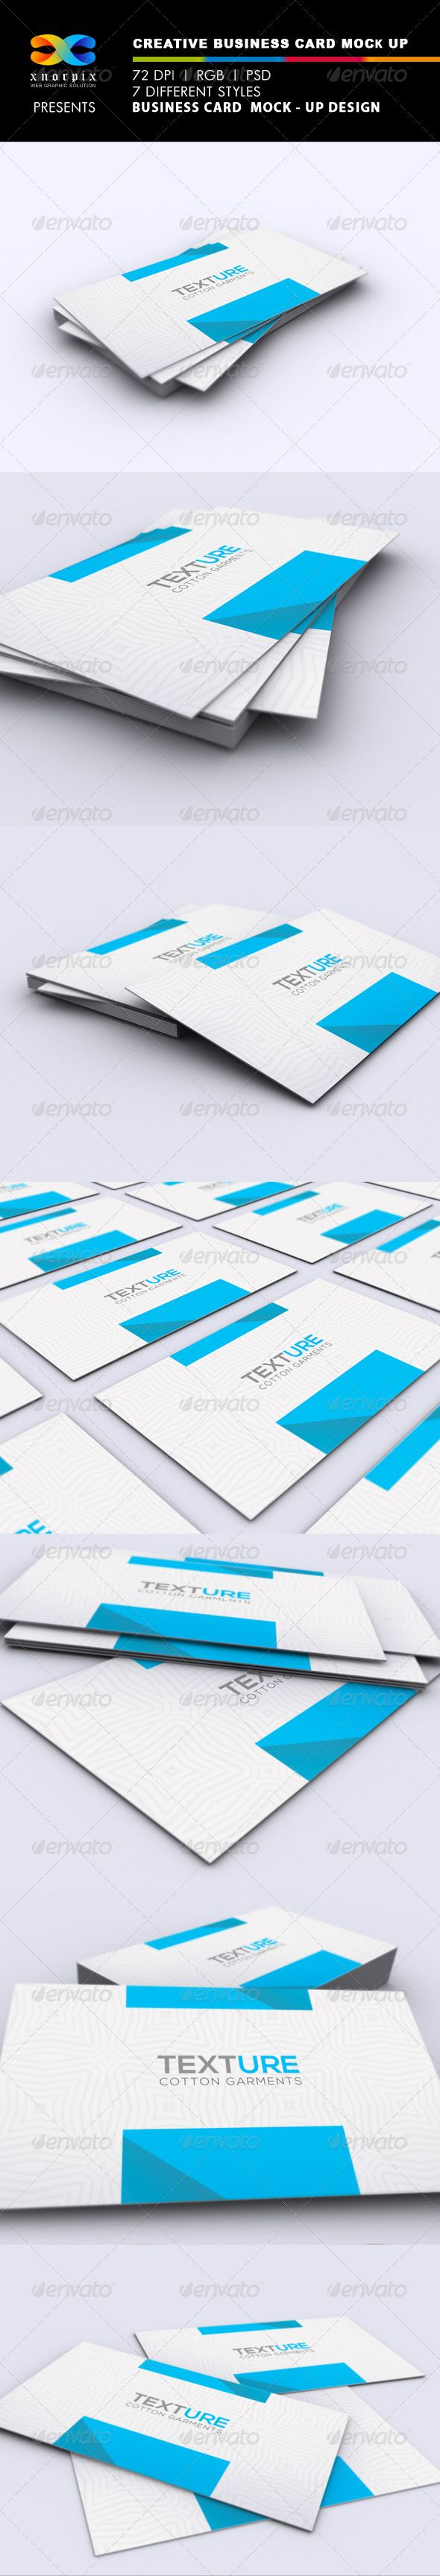 717 best business card mockup images on pinterest